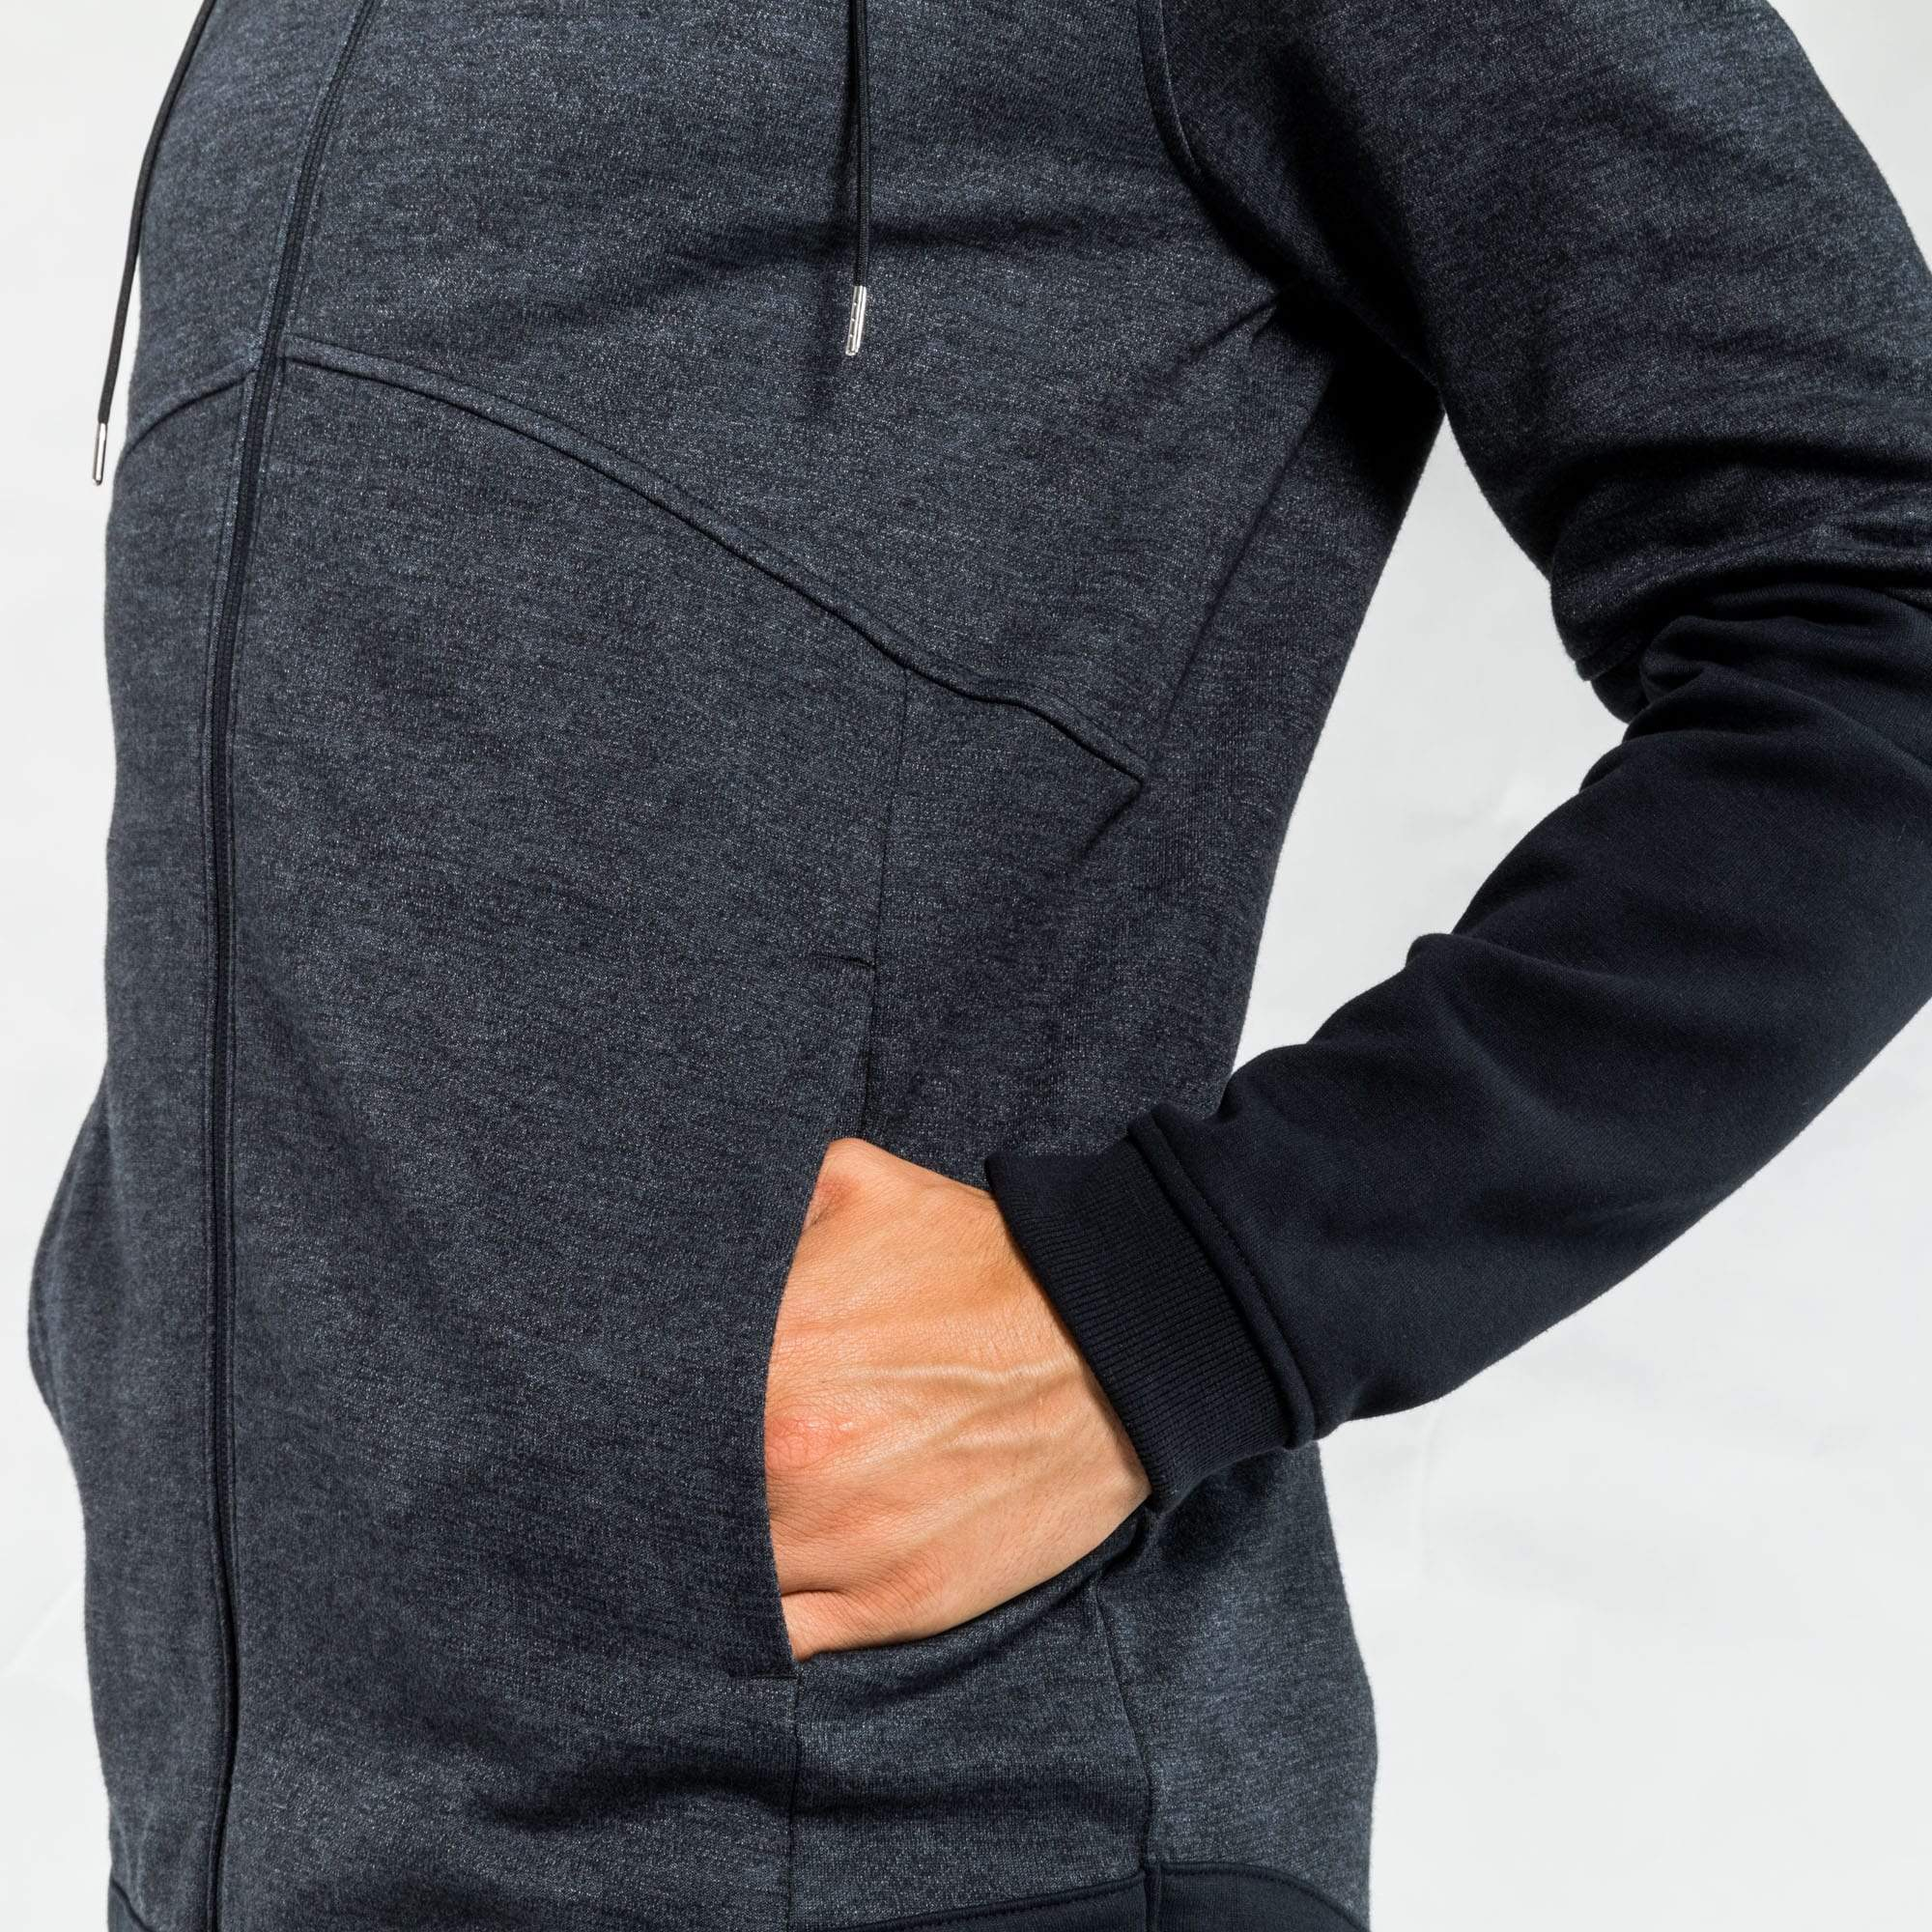 Under Armour Hoodies Under Armour Double Knit Full-Zip Hoodie